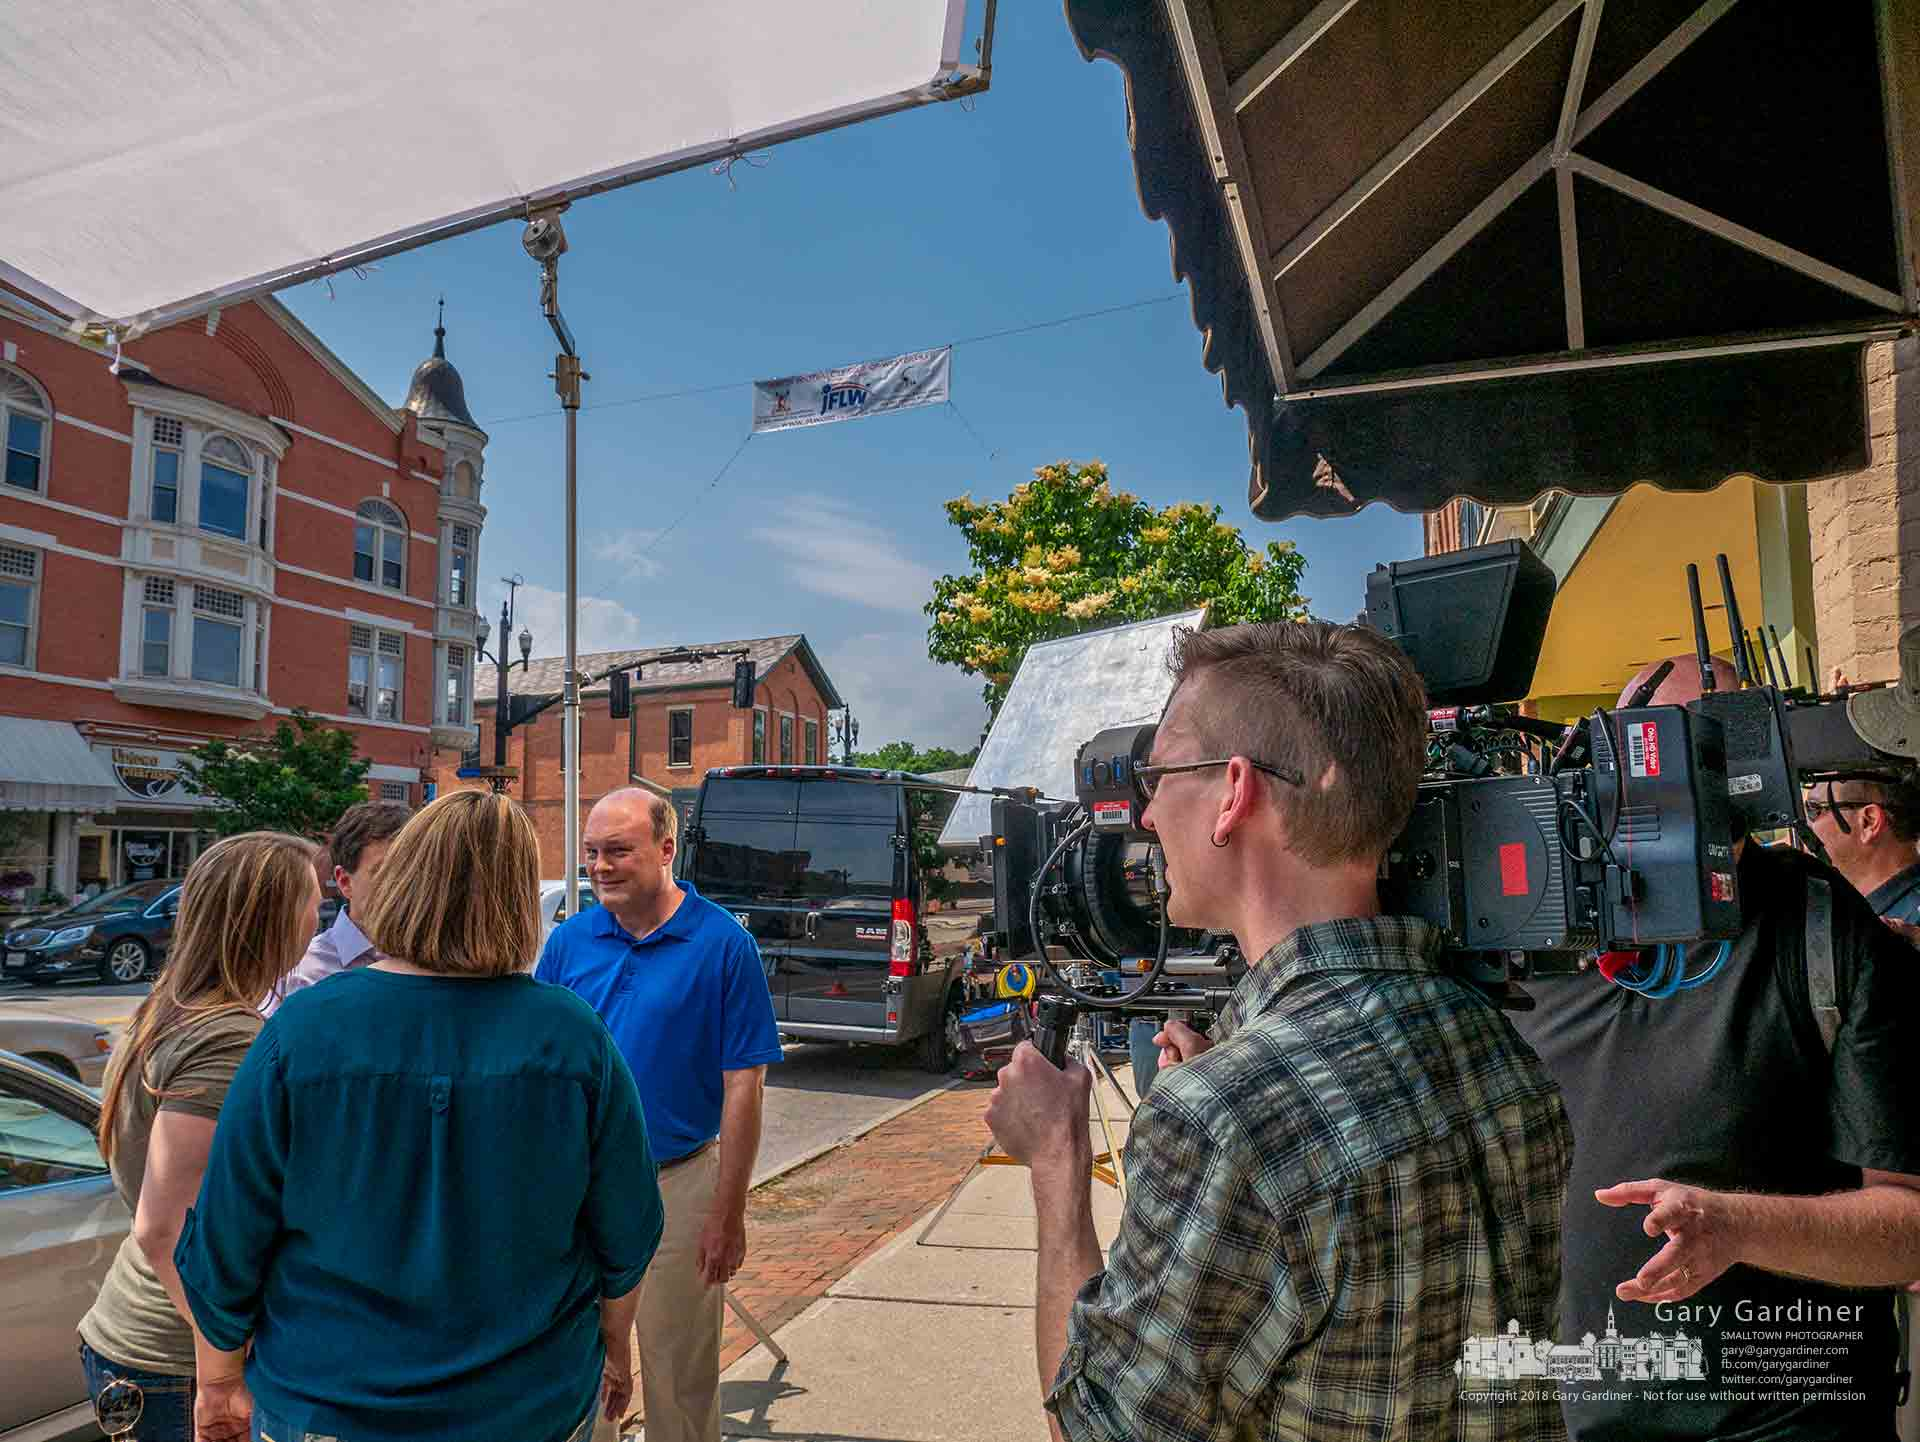 A videoproduction crew records a portion of a congressional campaign ad in front of Pure Roots in Uptown Westerville. My Final Photo for June 7, 2018.